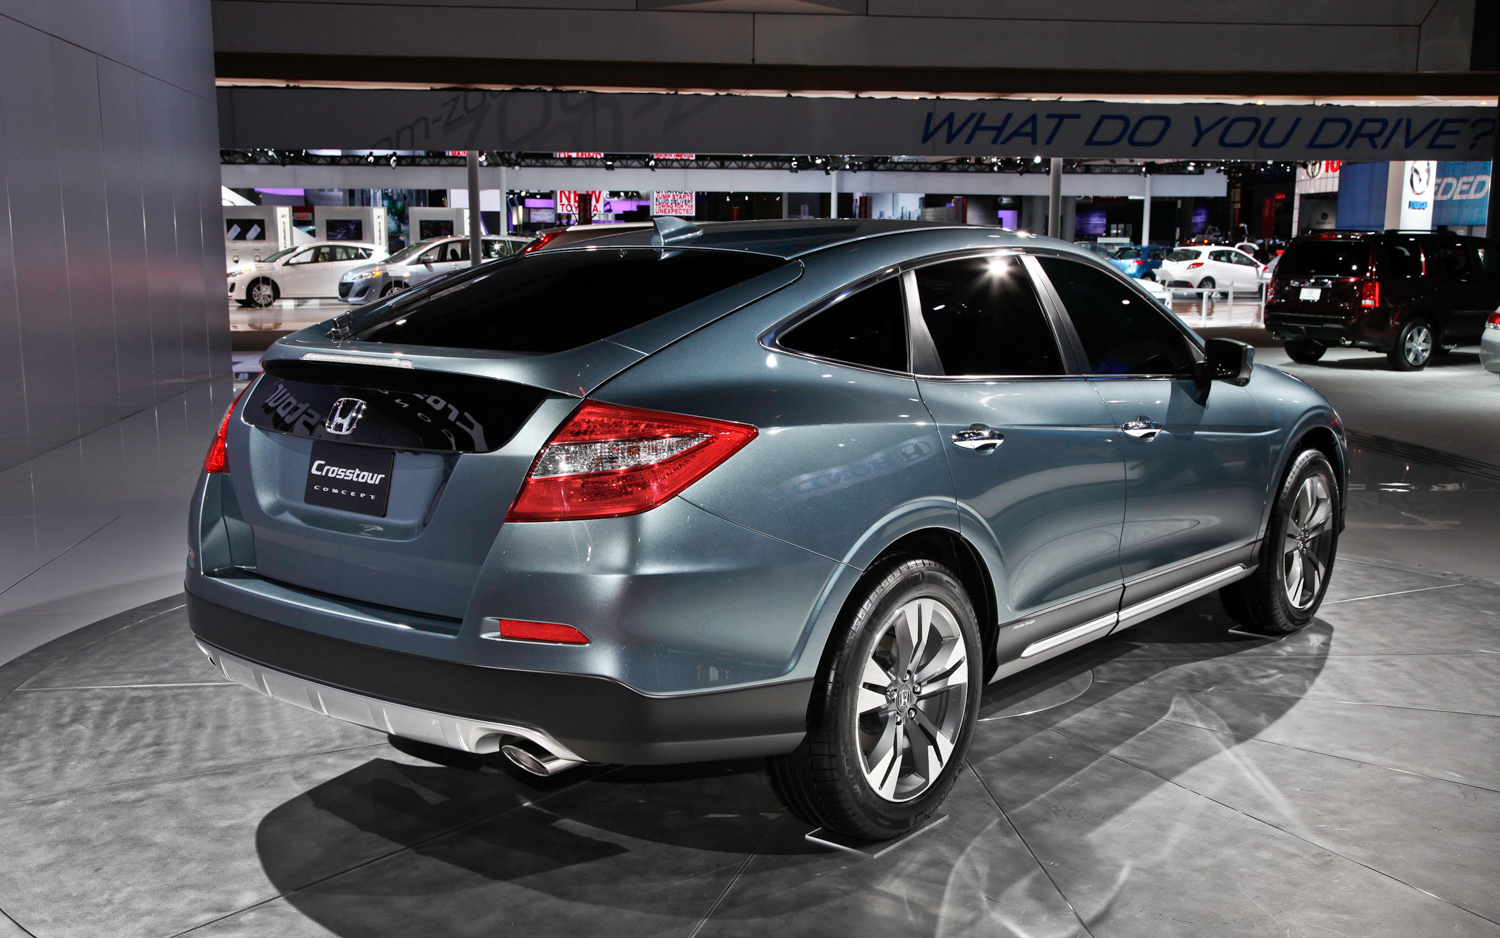 Honda Crosstour I 2009 - 2012 SUV 5 door #8